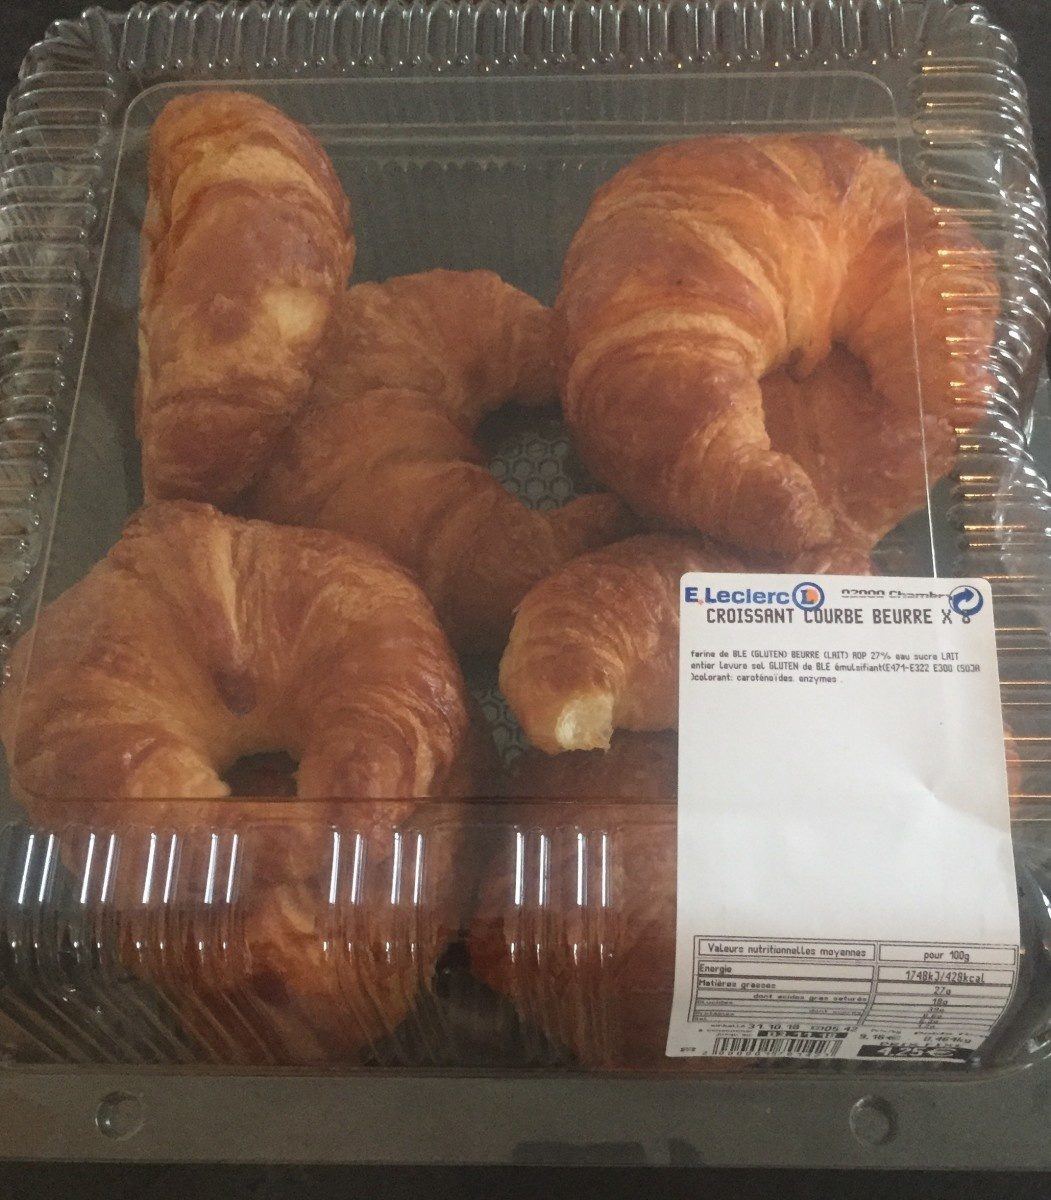 Croissant courbe beurre - Product